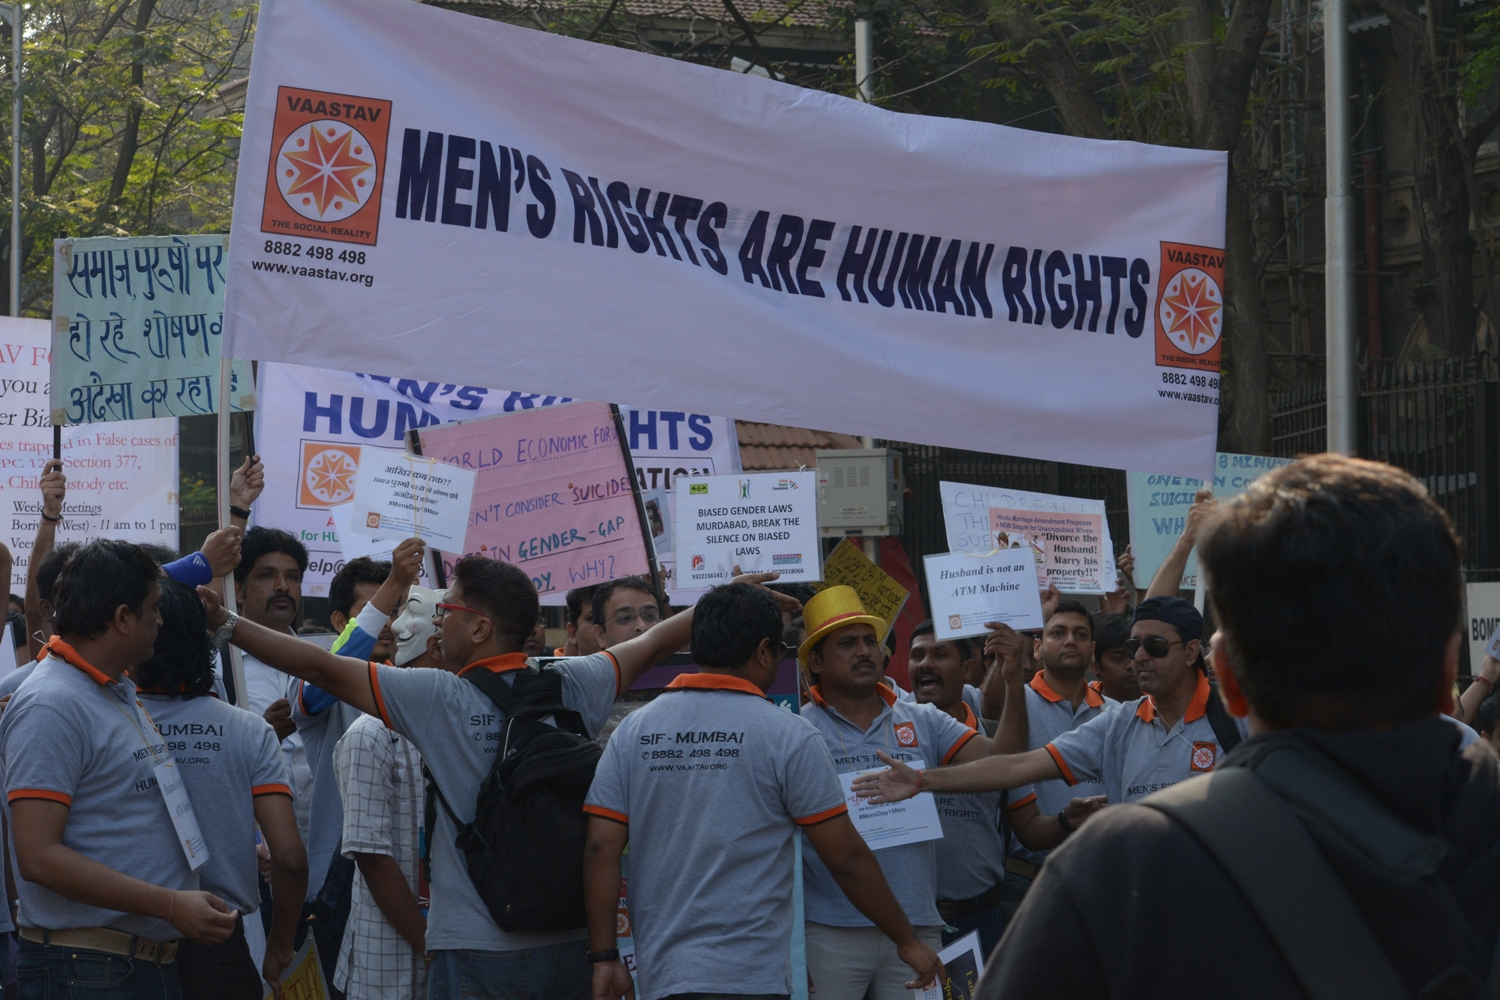 Men's rights are HUMAN RIGHTS